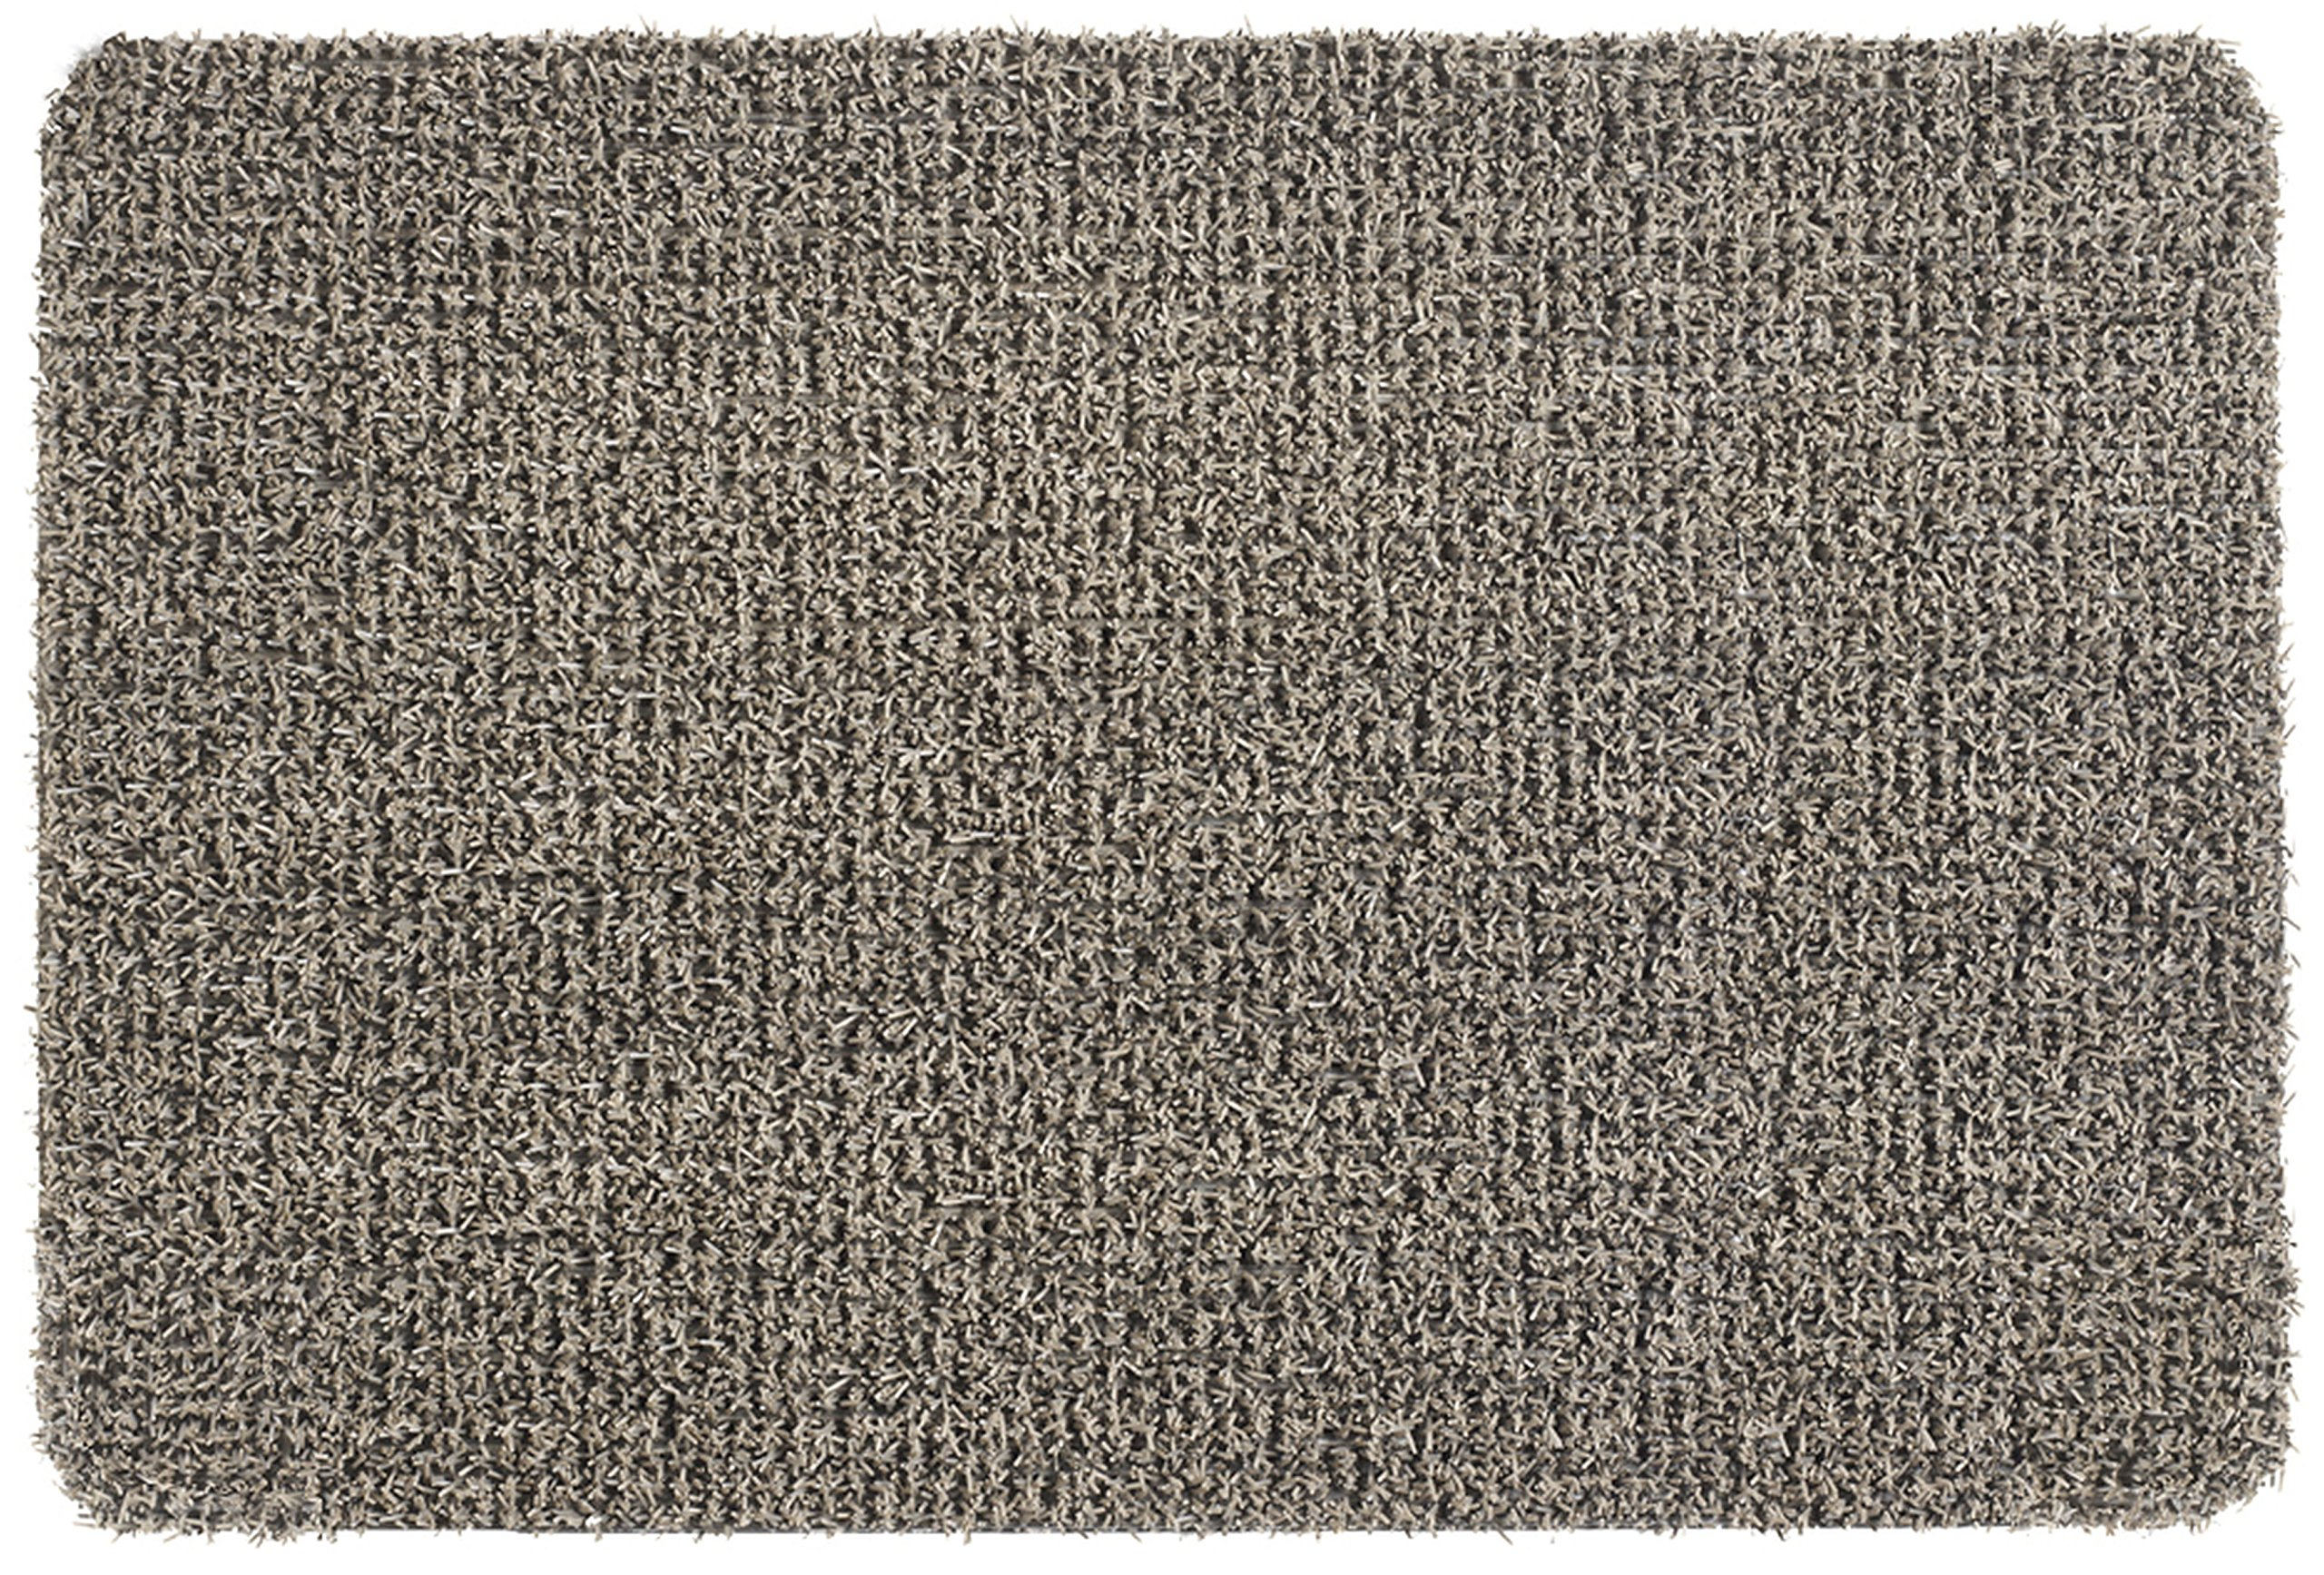 Grassworx Clean Machine Flair Doormat, 24'' x 36'', Earth Taupe (10372034) by Grassworx